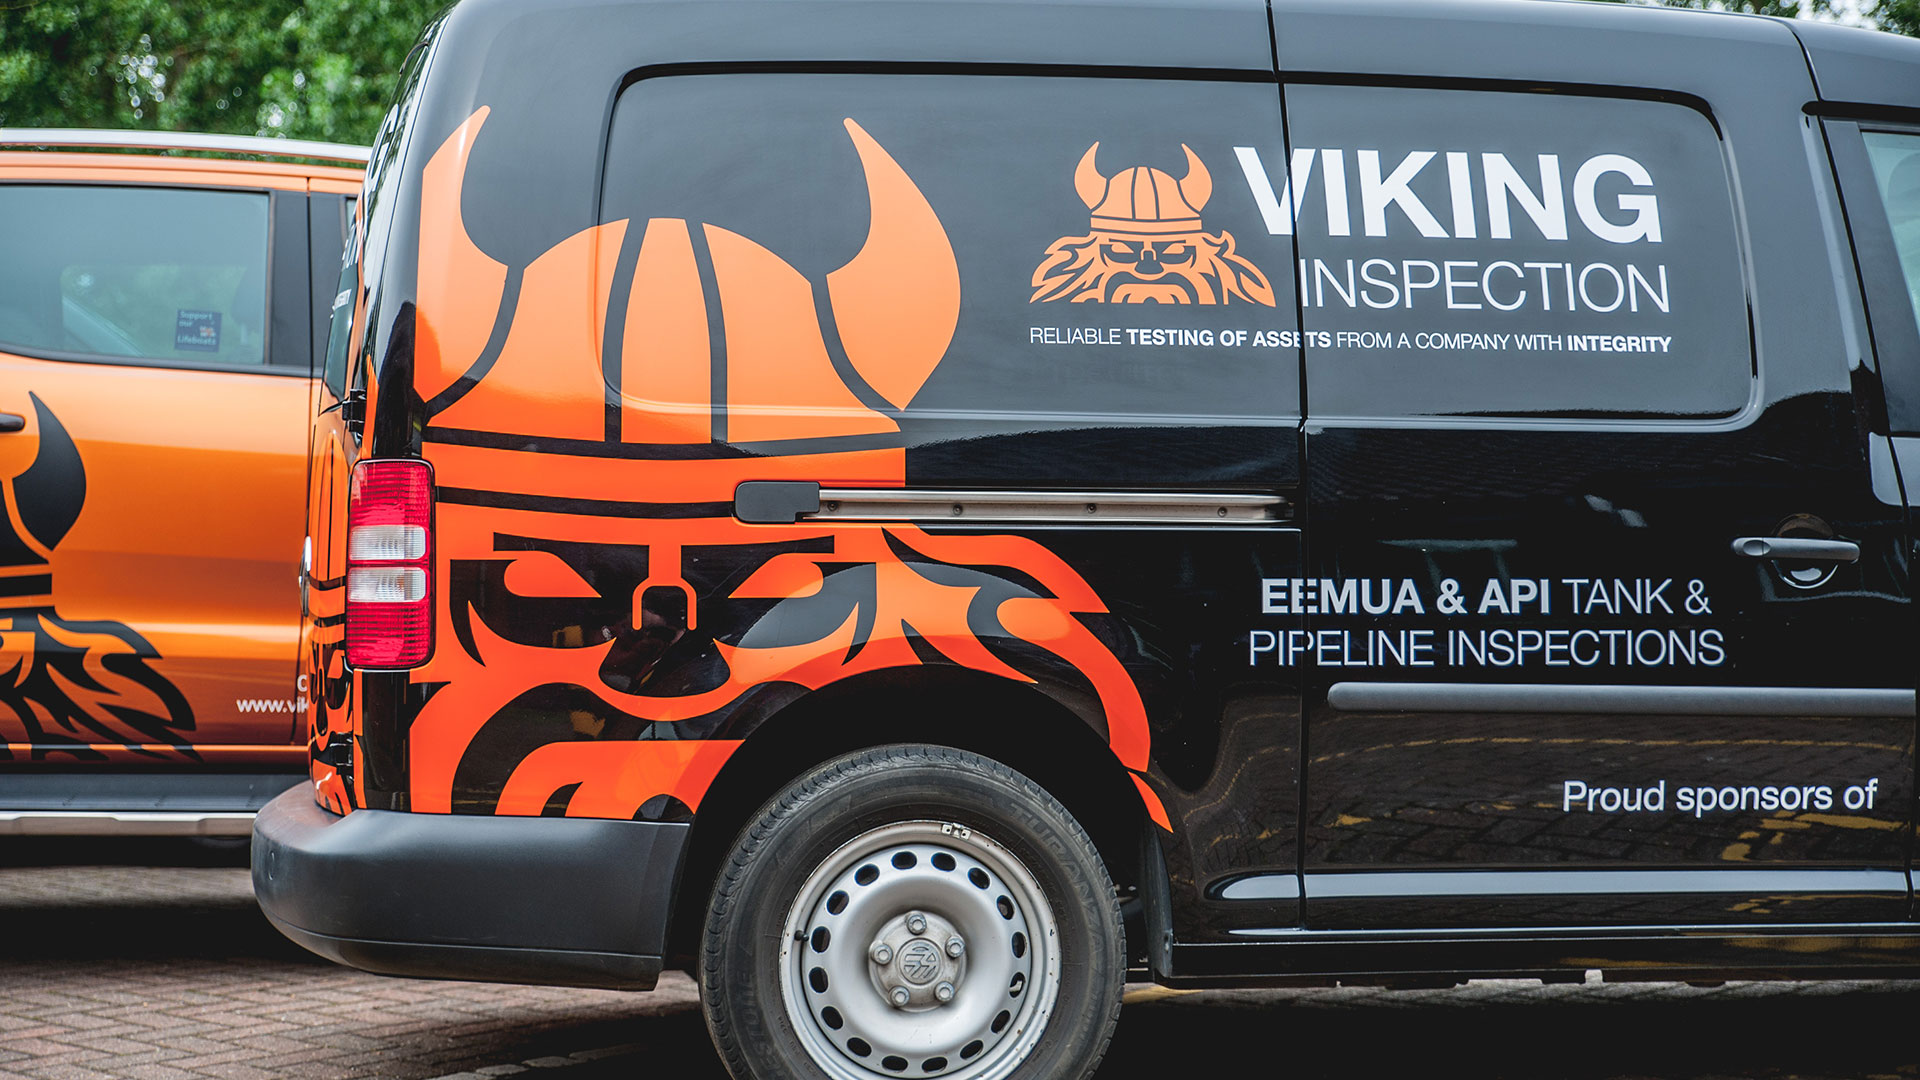 Viking Inspection Undergoes a Brand Refresh